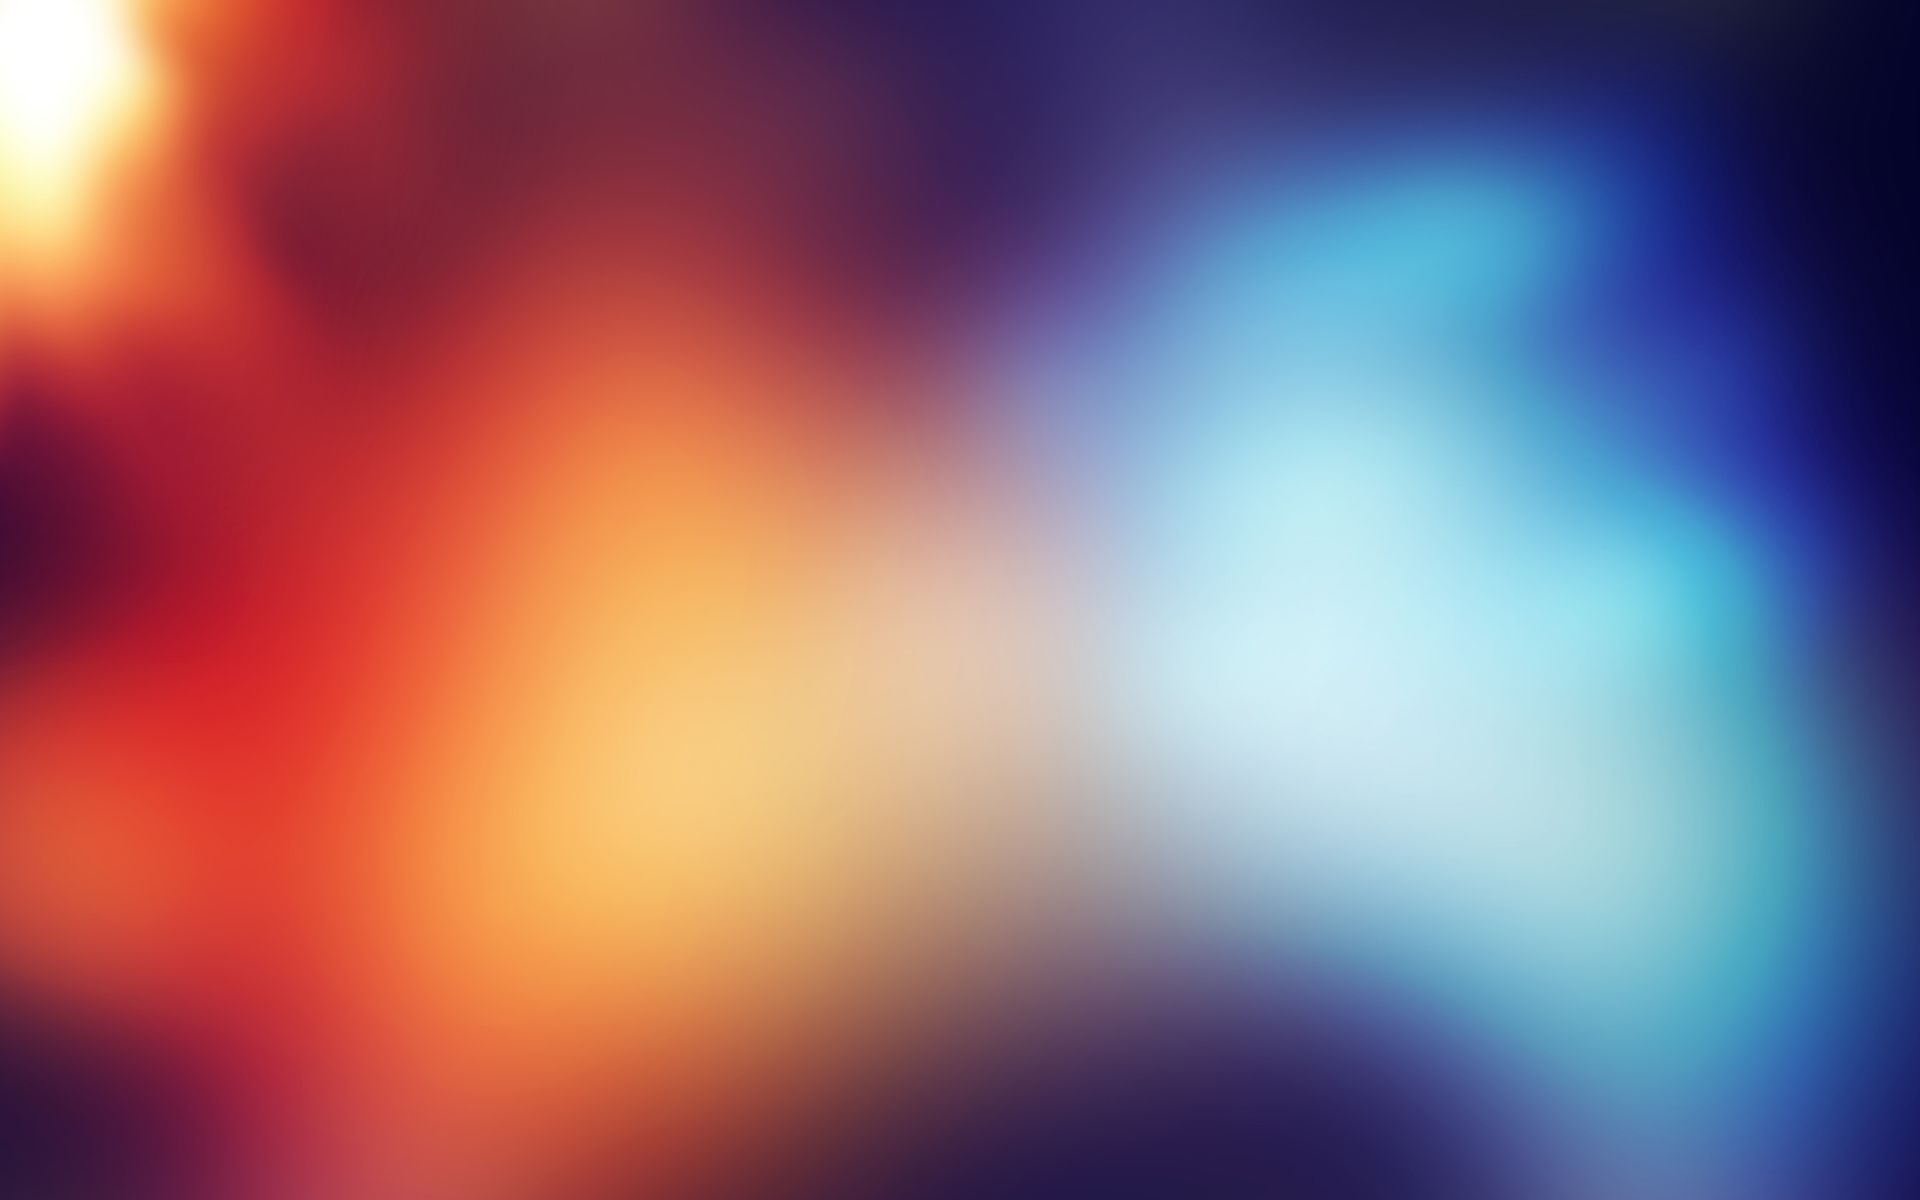 Hd Gradient Wallpapers Wallpapersafari